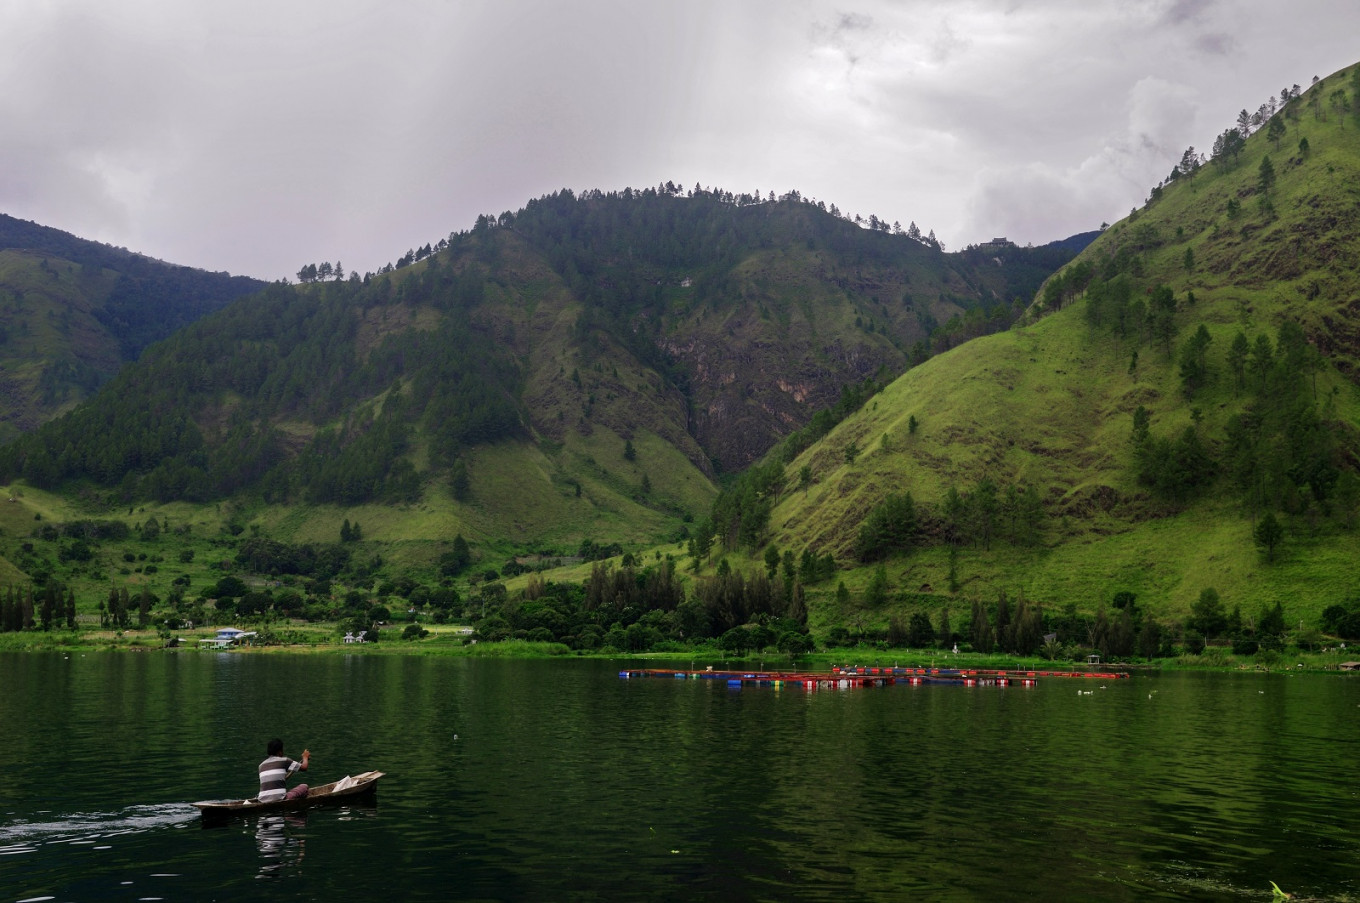 Number of visitors to Lake Toba sinking fast: Boatmen